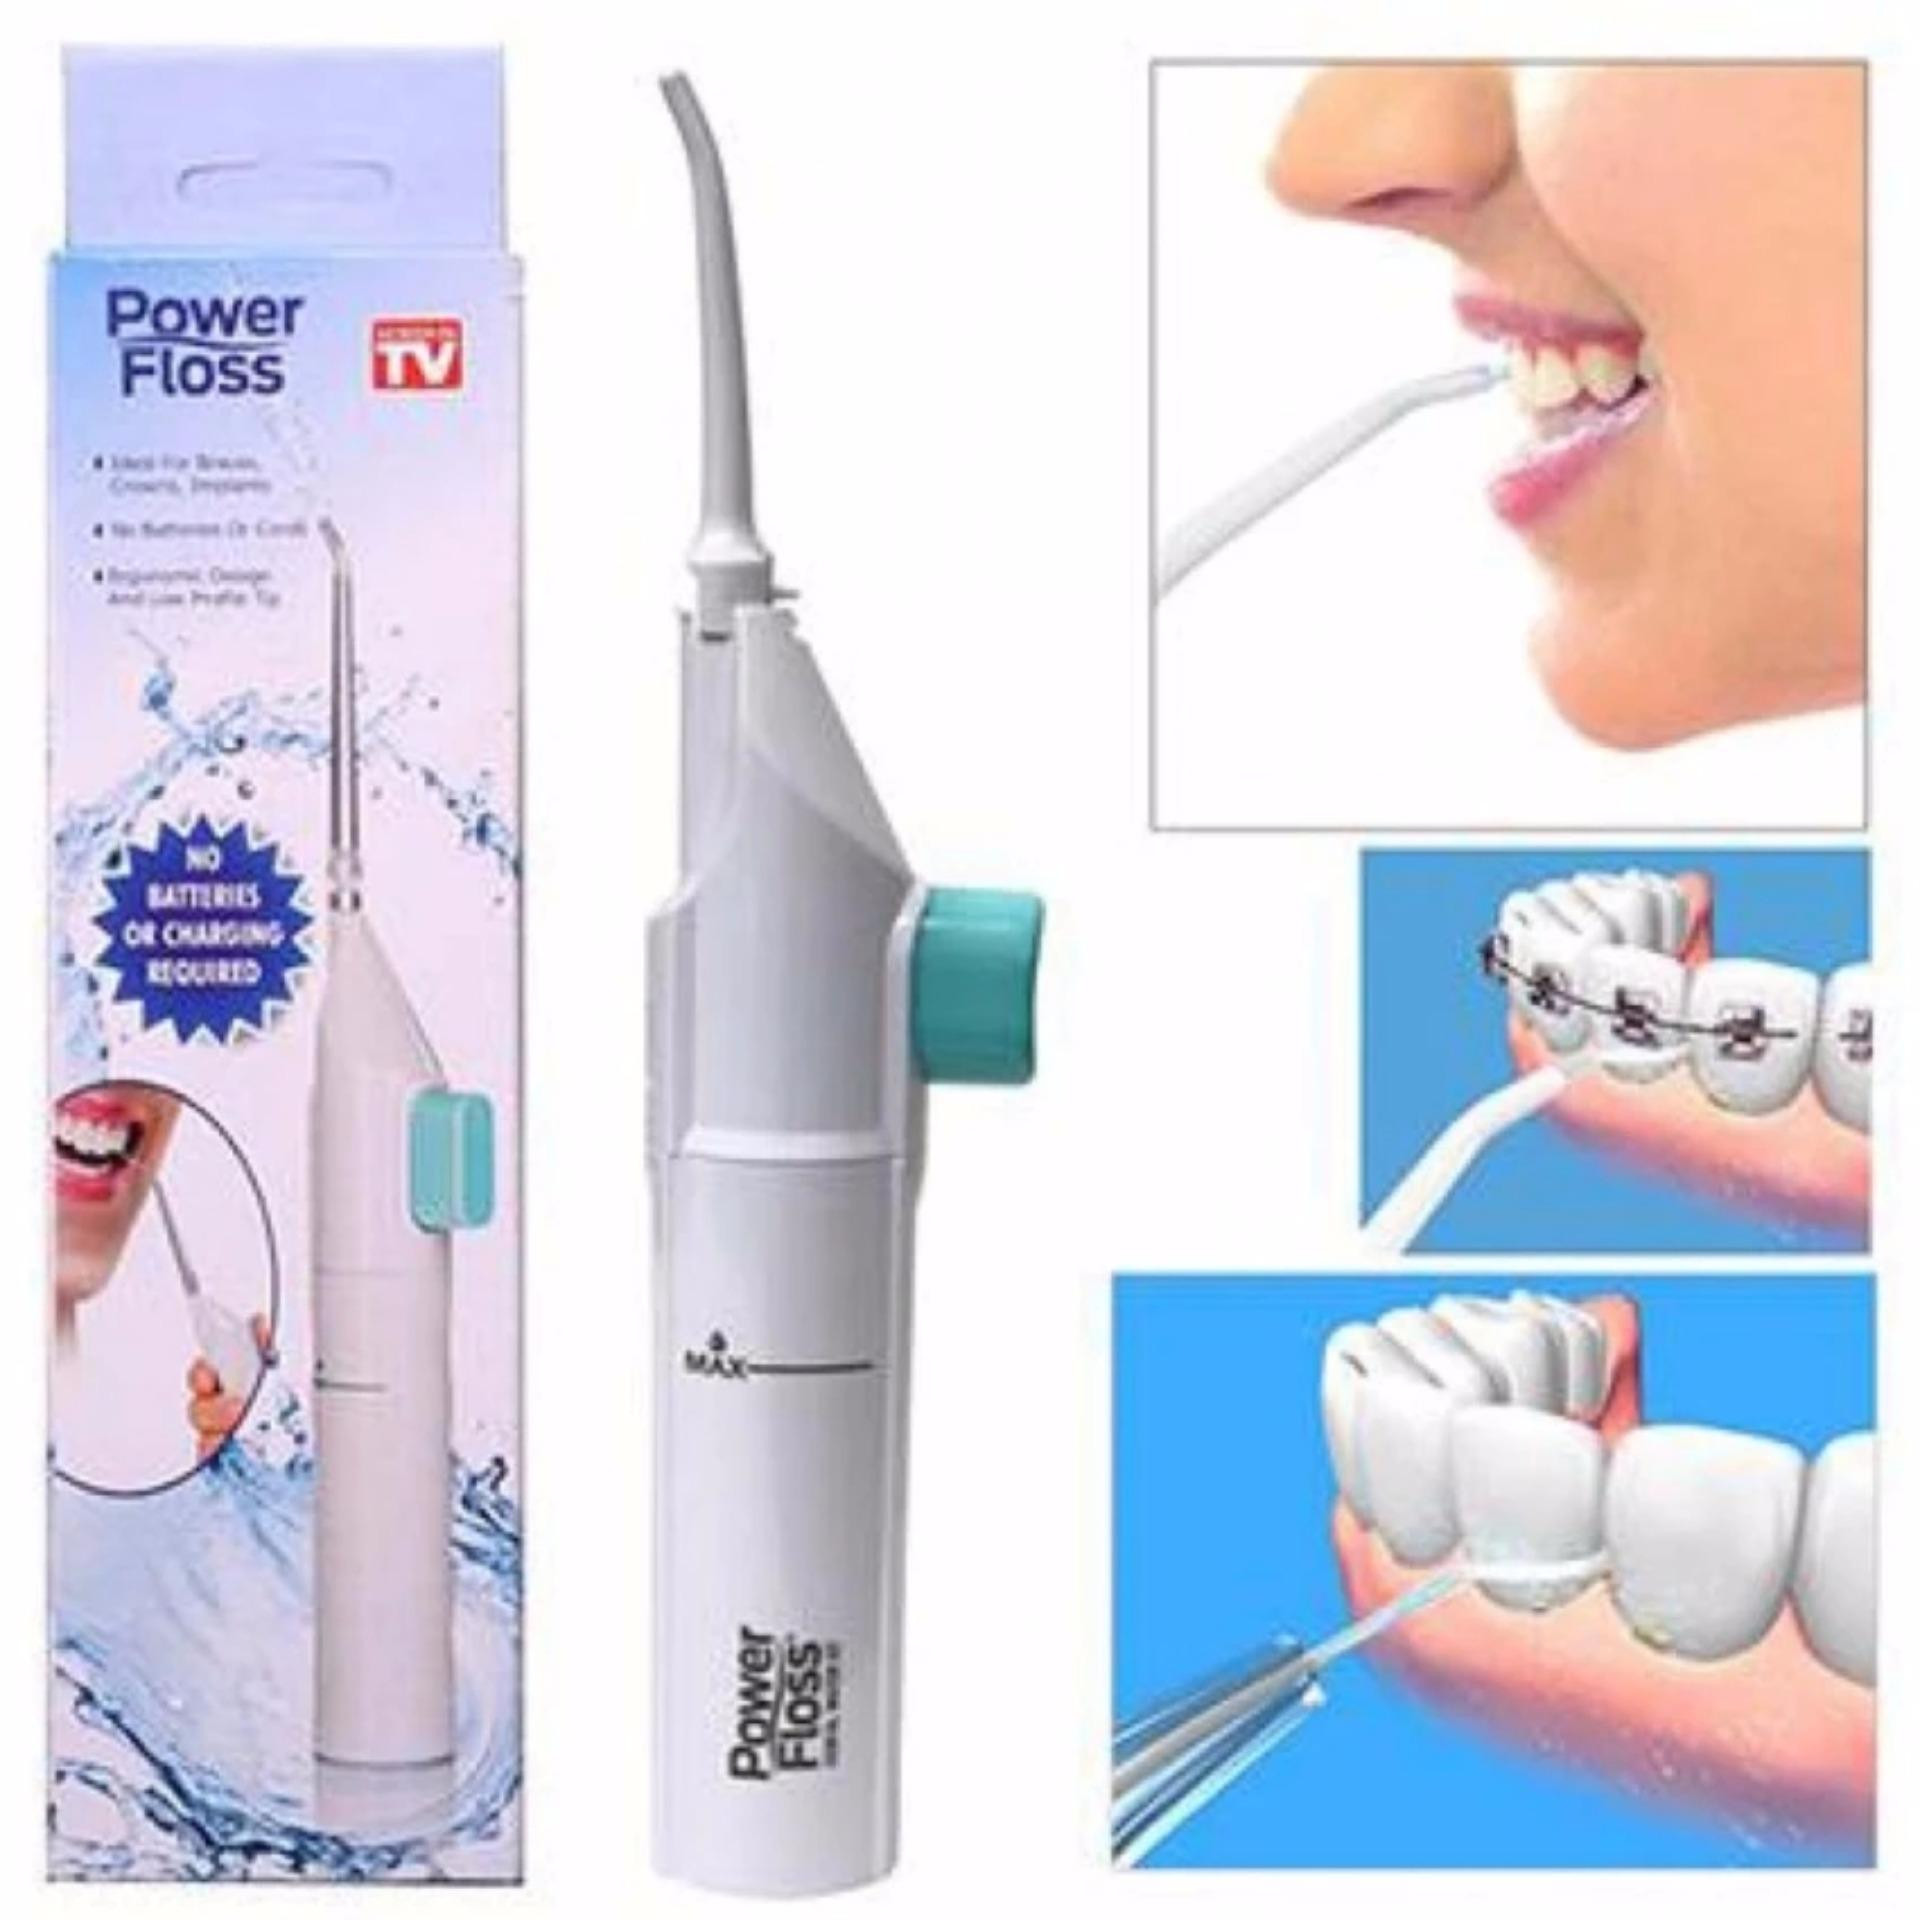 Portable Power Floss Dental Water Jet Tooth Pick No Batteries Dental Cleaning Whitening Cleaner By Dgm.